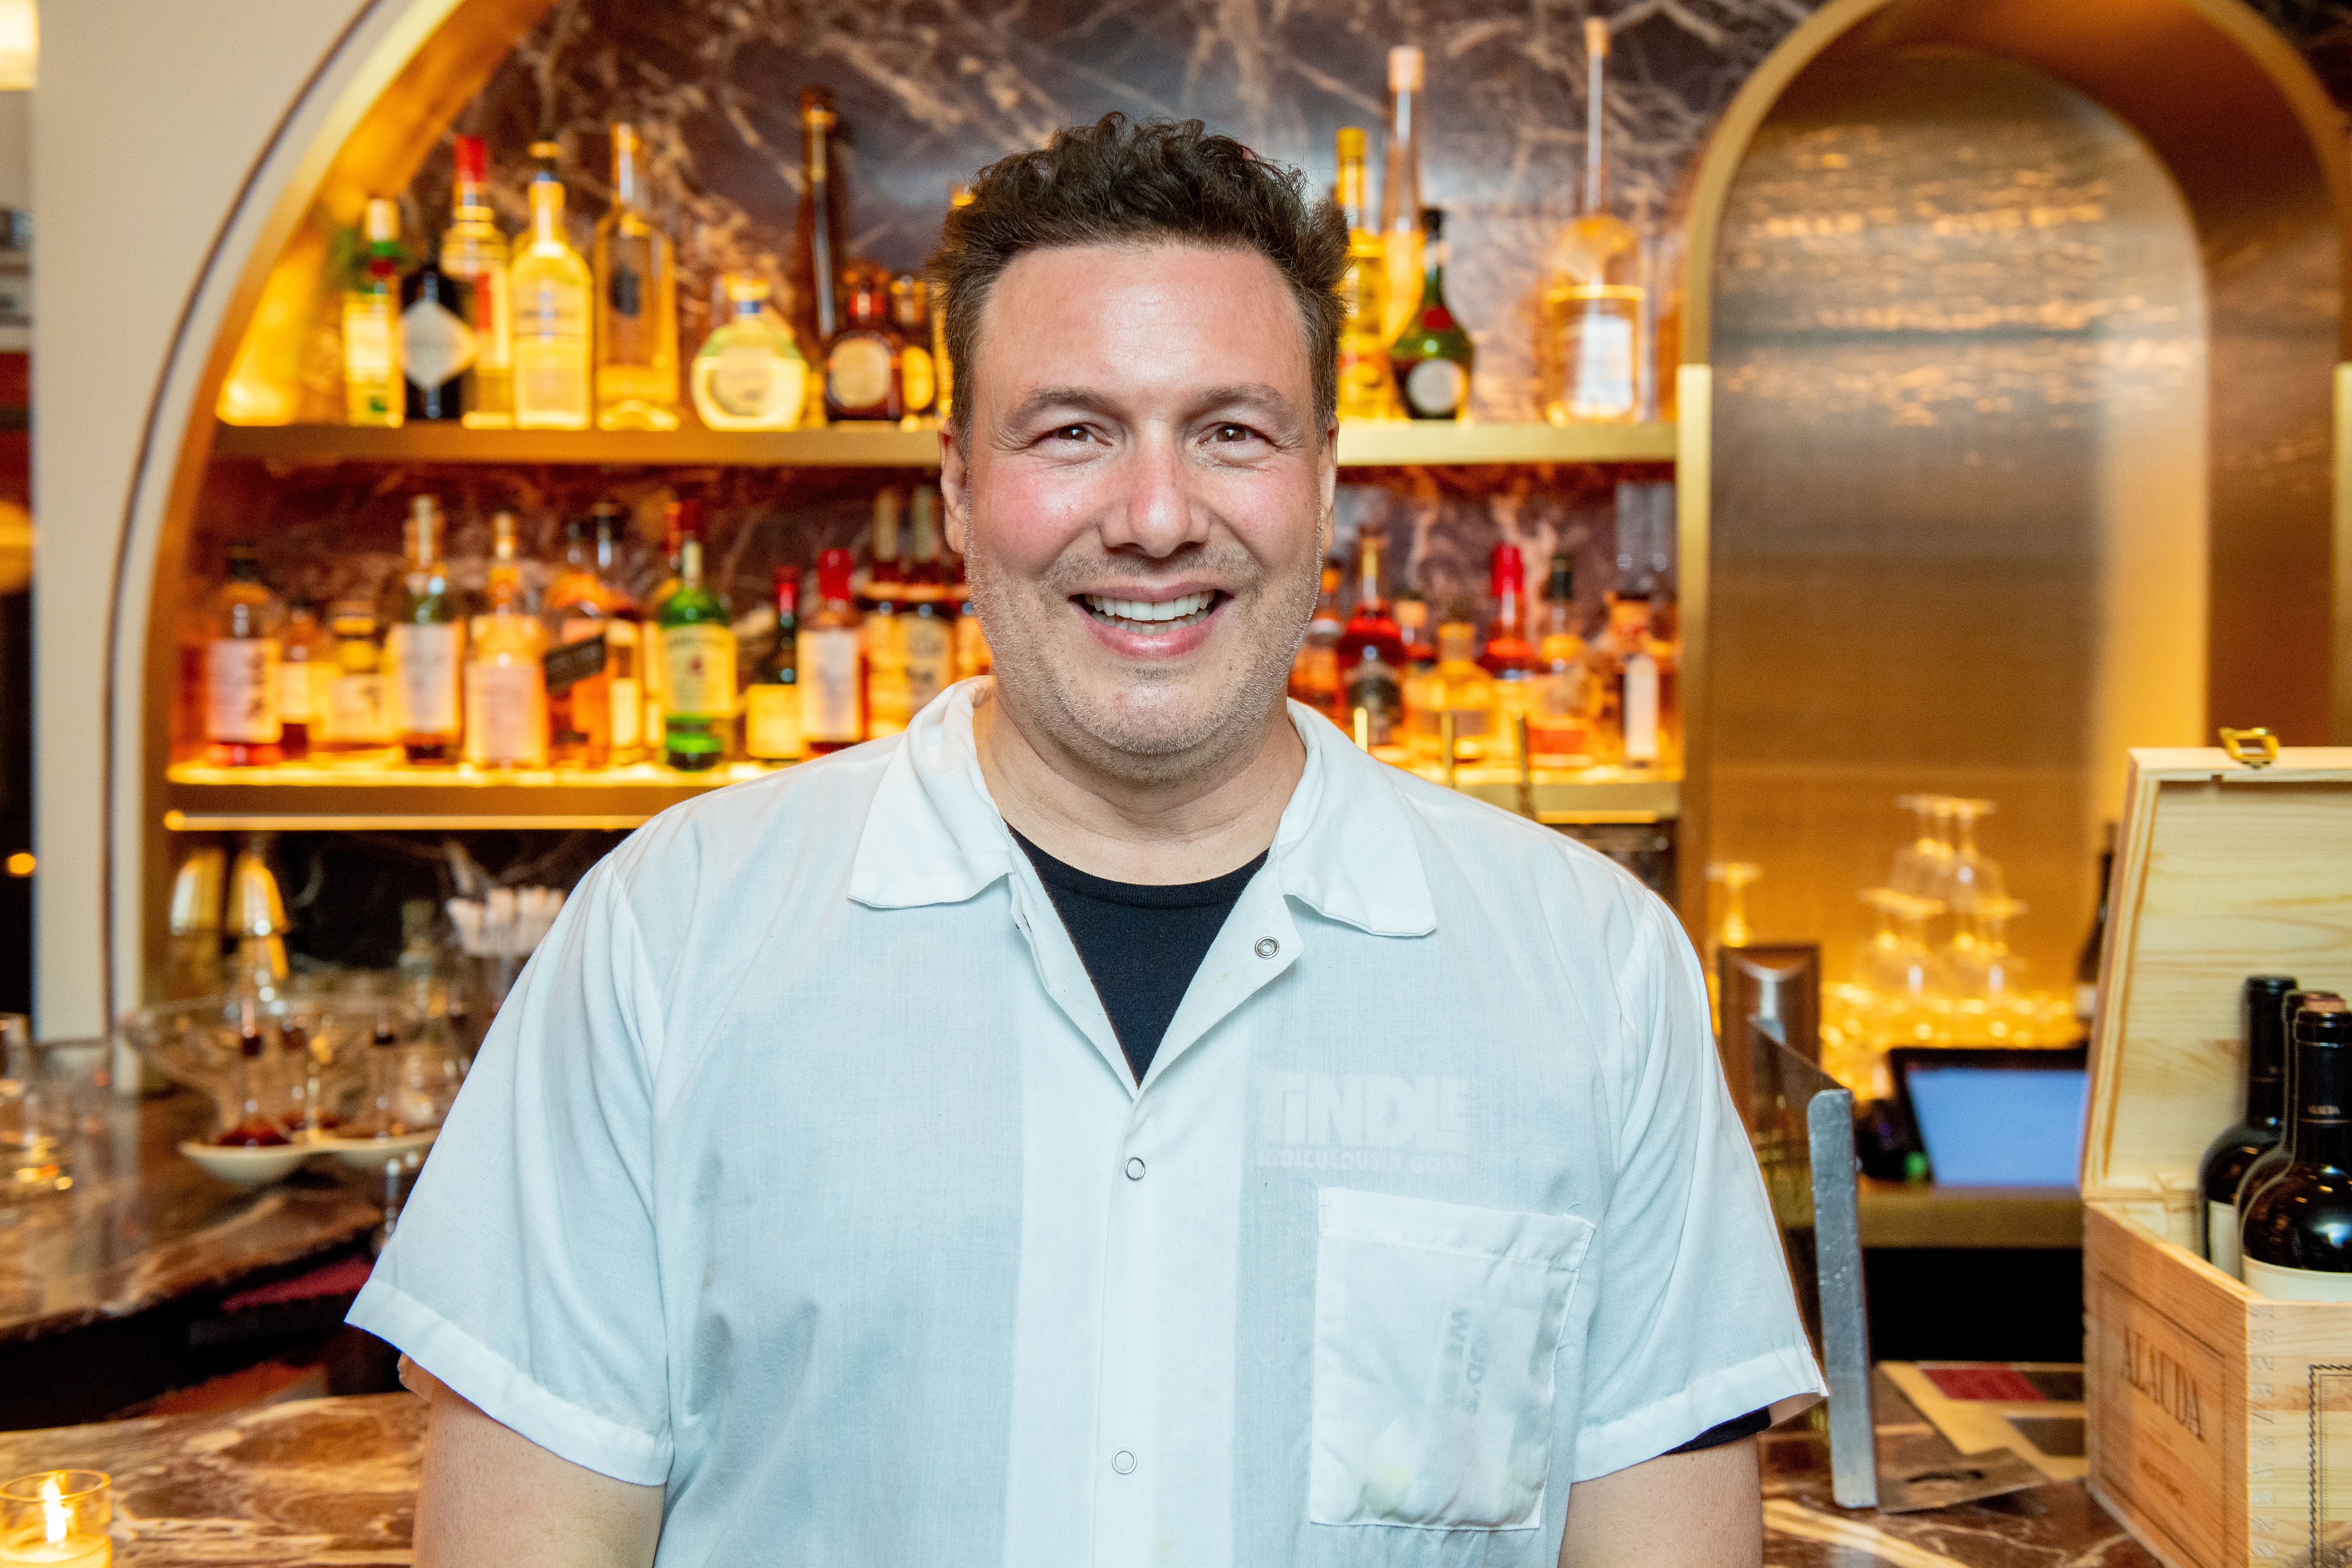 Chef Rocco DiSpirito wearing a white button down shirt over a black tshirt, smiling and standing in front of a bar.